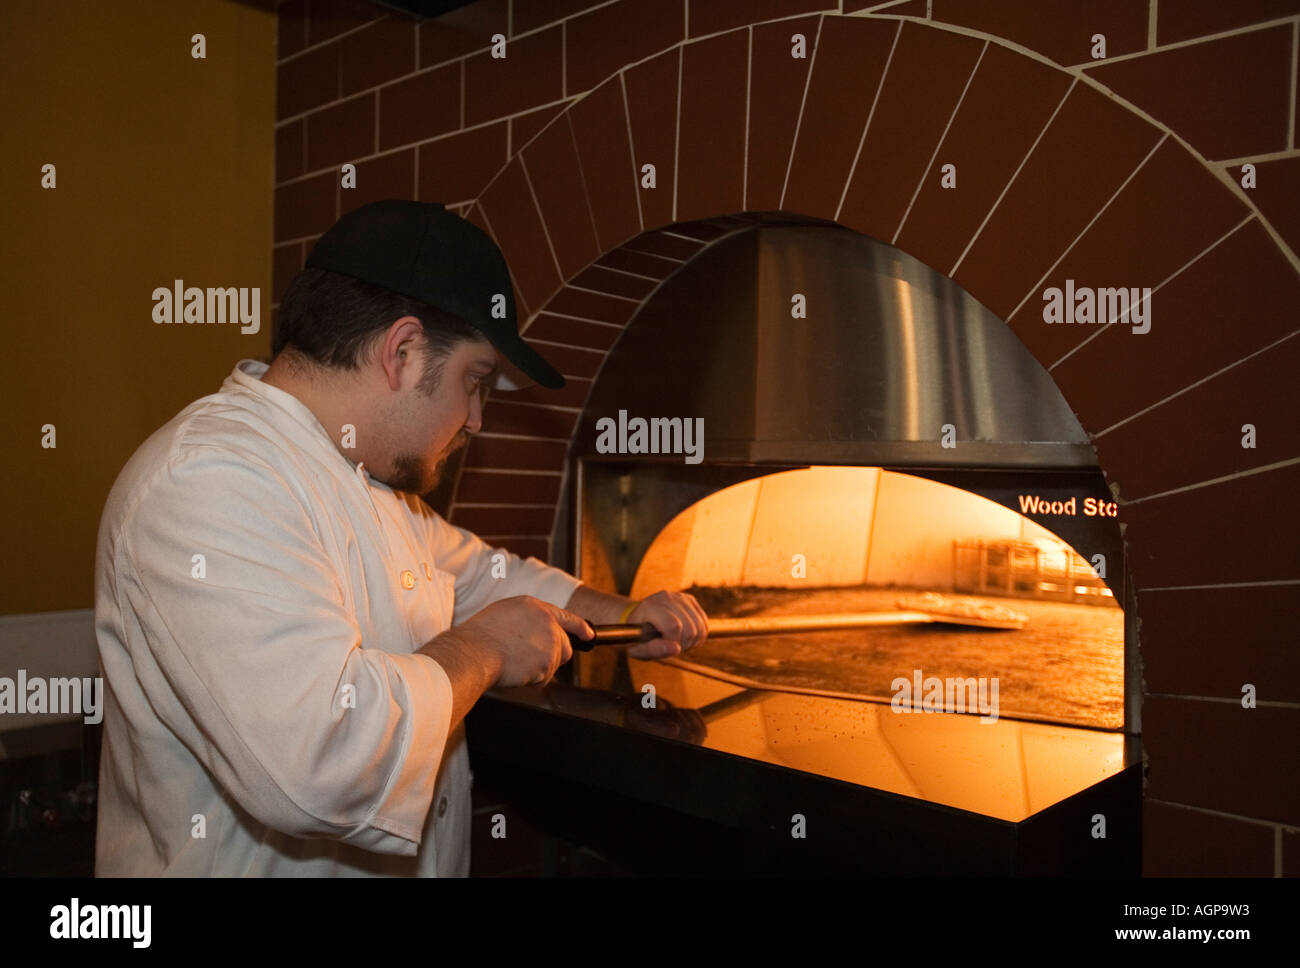 Detroit Michigan Frankie Paulick a line cook at Small Plates restaurant puts a pizza in the oven Stock Photo